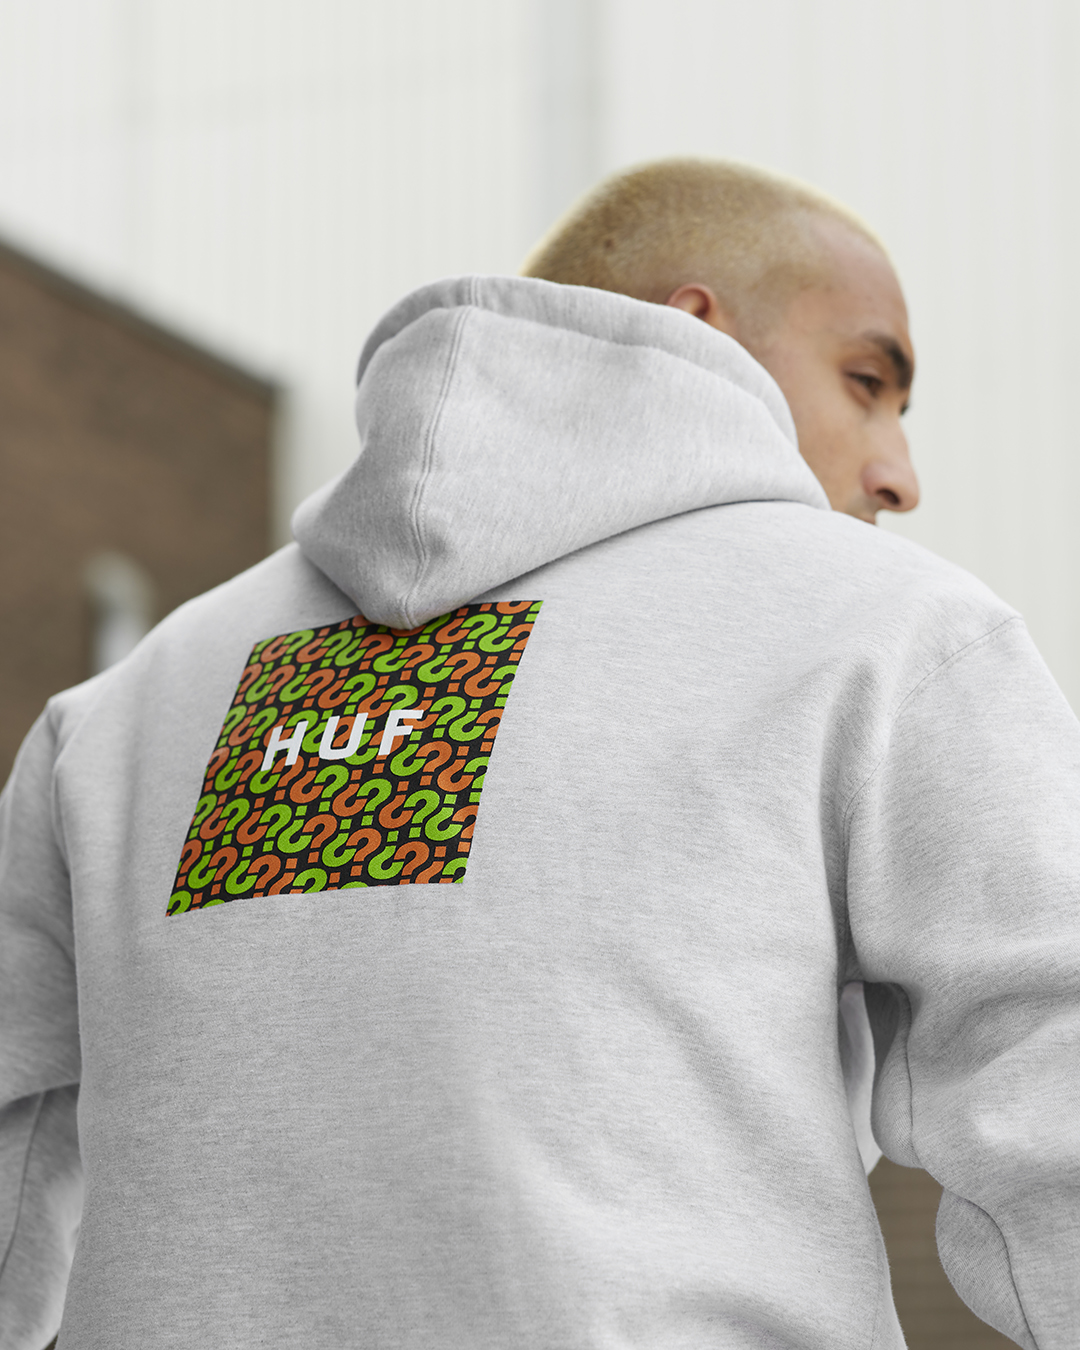 We've teamed up with HUF for an exclusive apparel collection